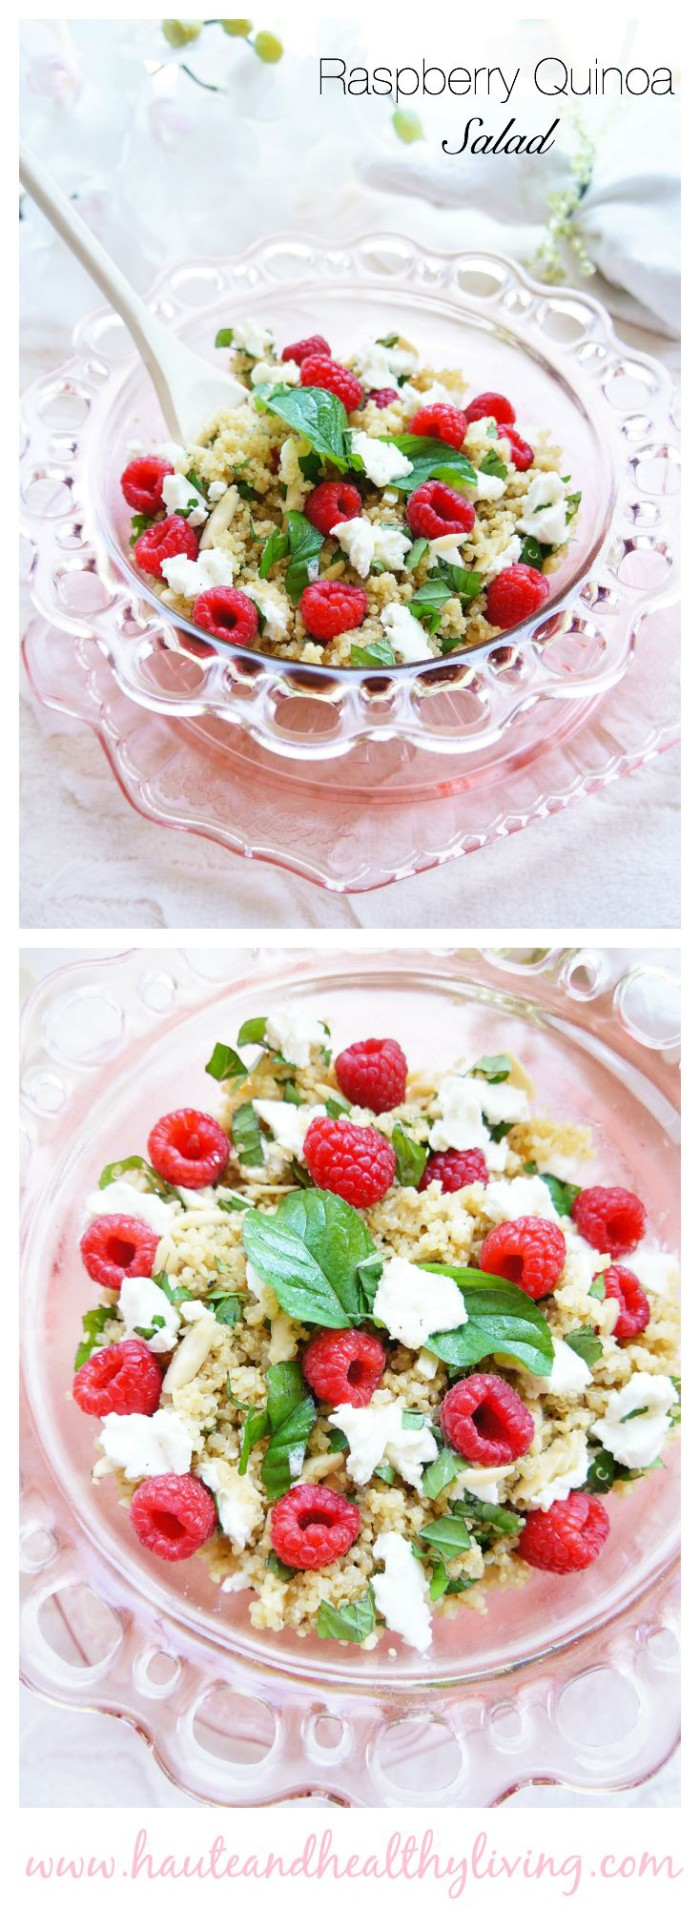 Raspberry Quinoa Salad | Haute & Healthy Living